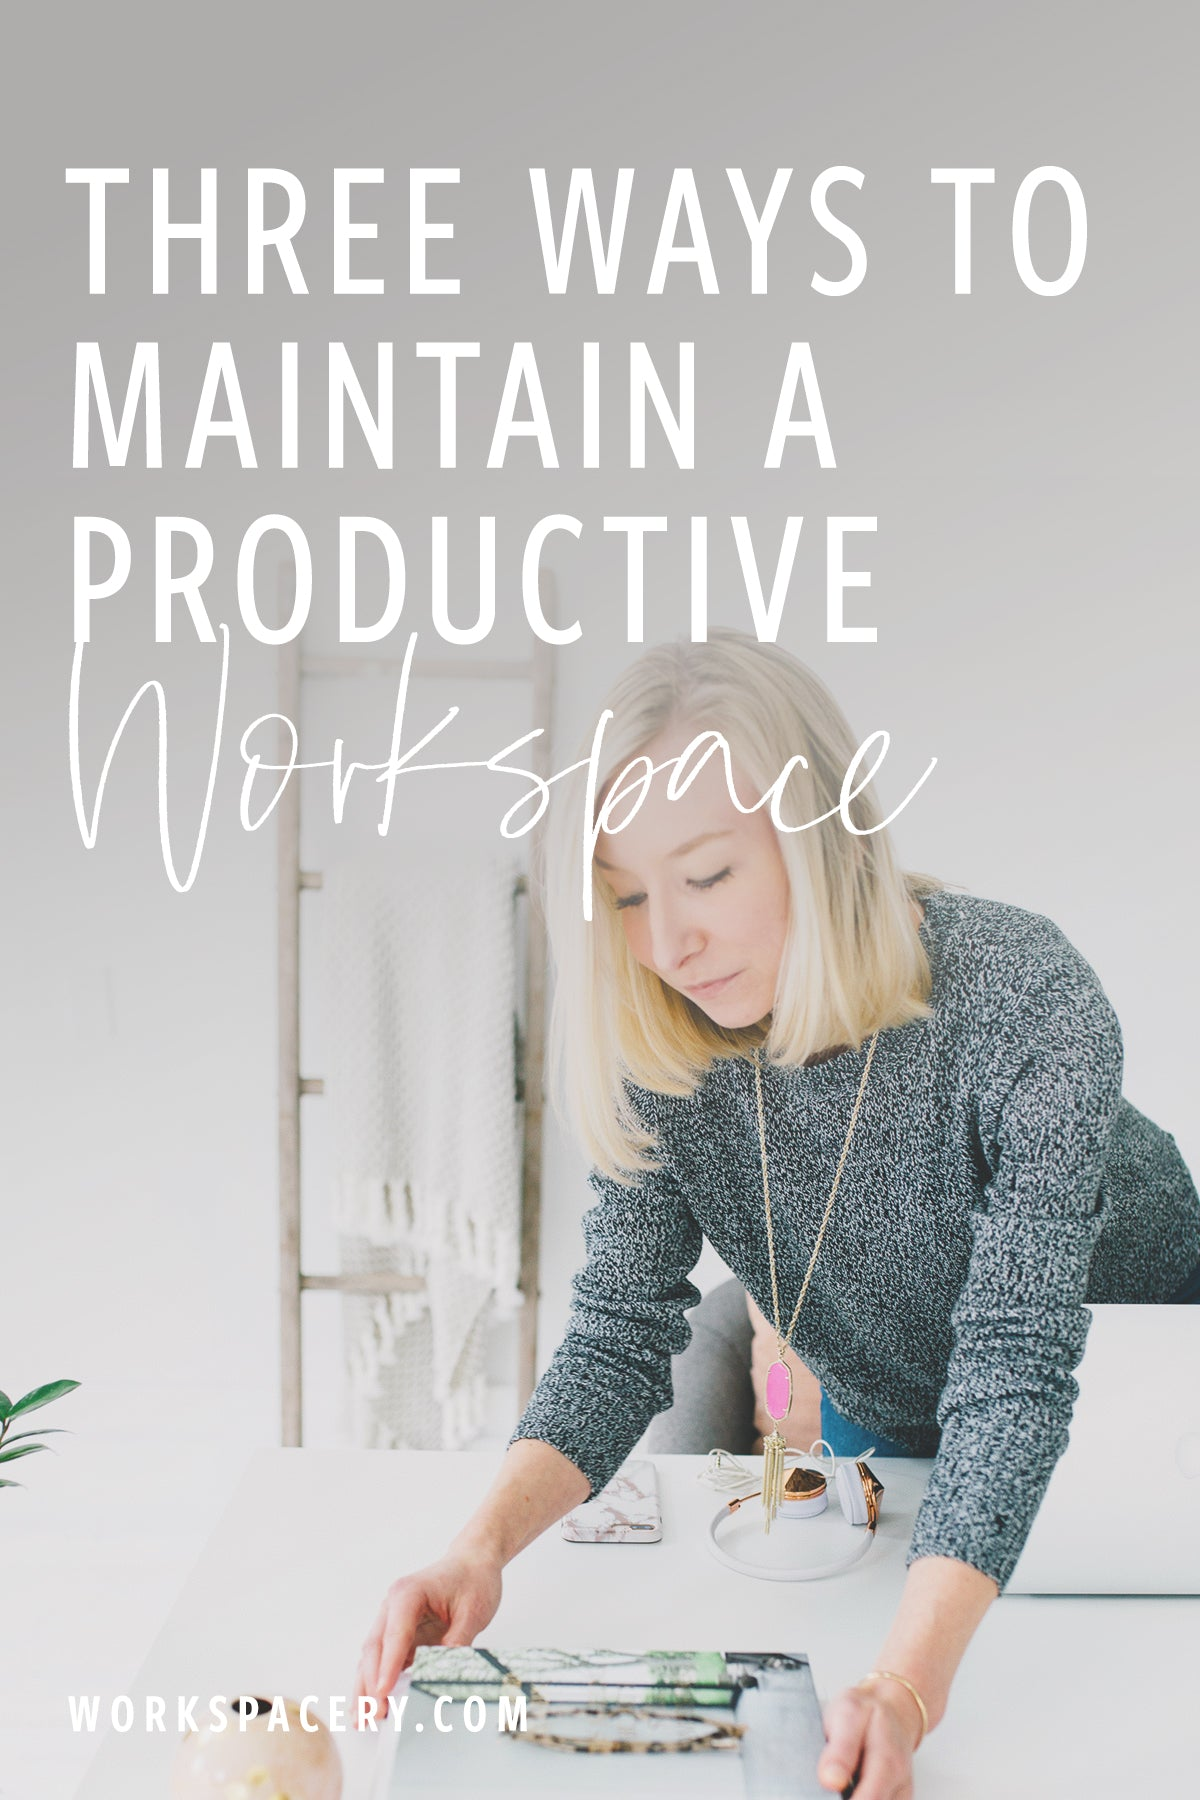 Three Ways to Maintain a Productive Workspace